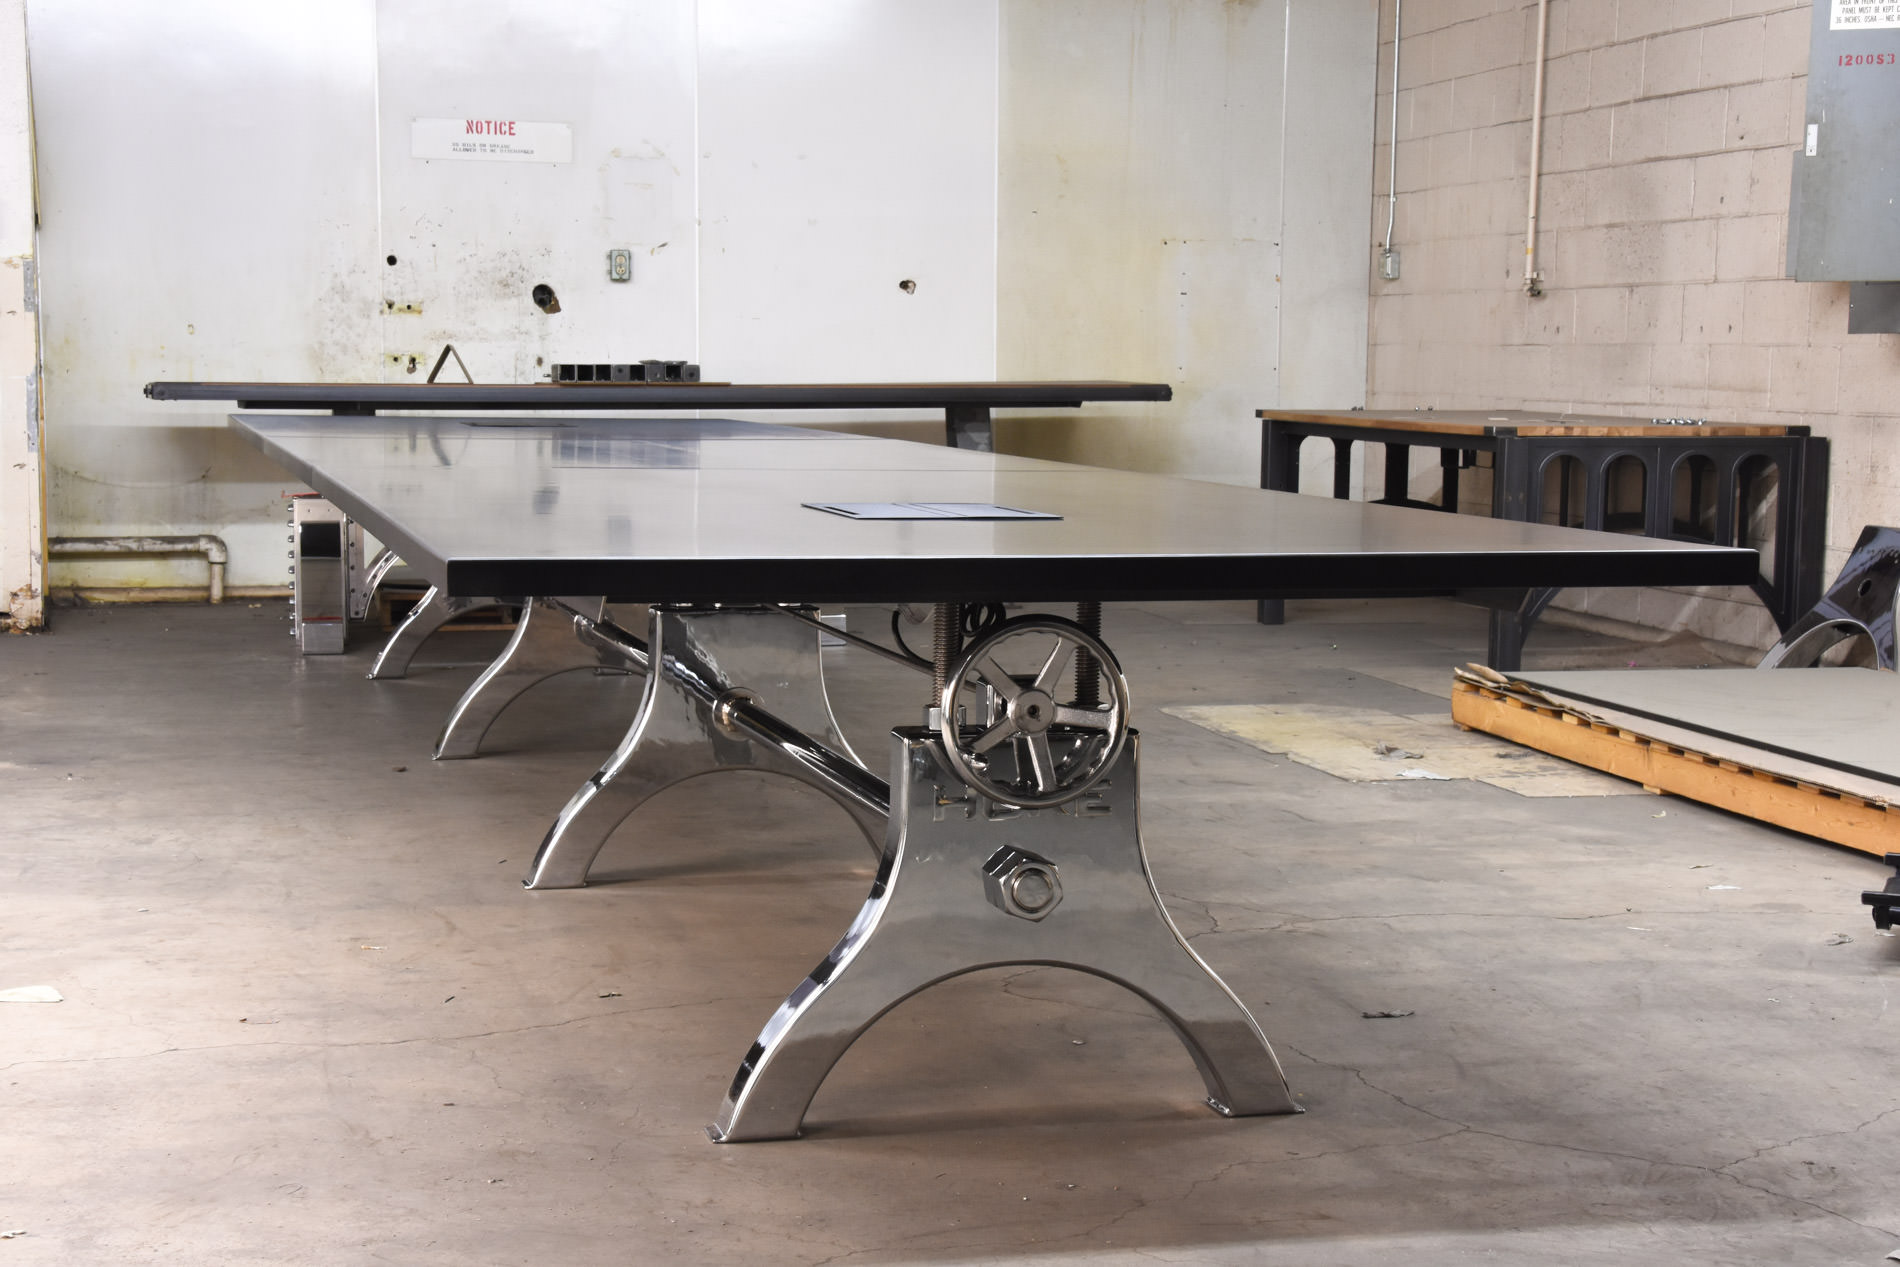 Hure conference table with faux crank vintage industrial furniture - Chrome Hure Conference Table With Faux Crank